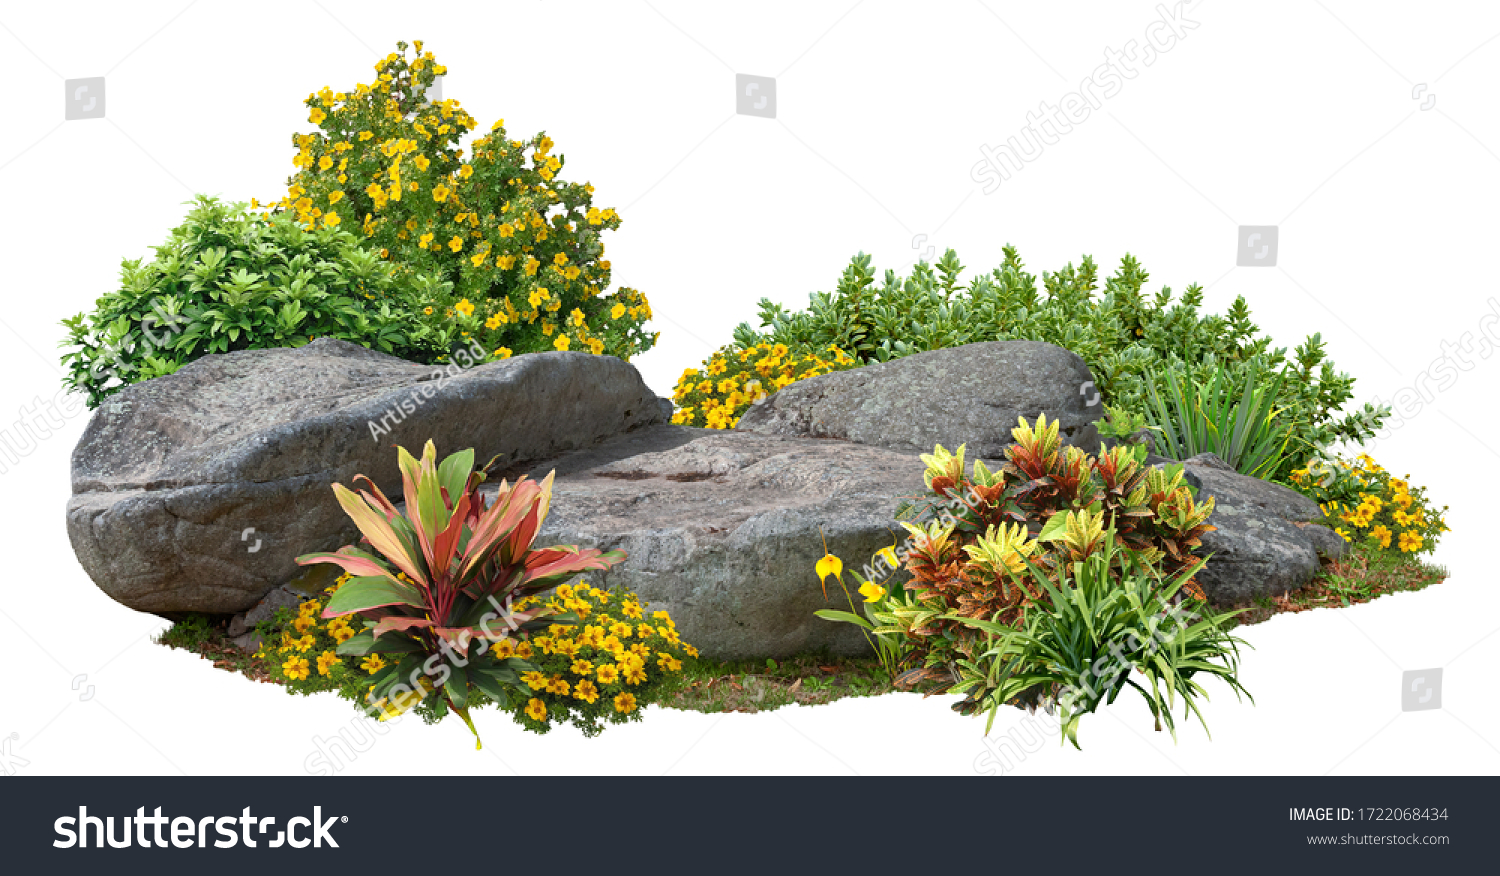 Cutout rock surrounded by flowers. Garden design isolated on white background. Flowering shrub and green plants for landscaping. Decorative shrub and flower bed. High qualit #1722068434